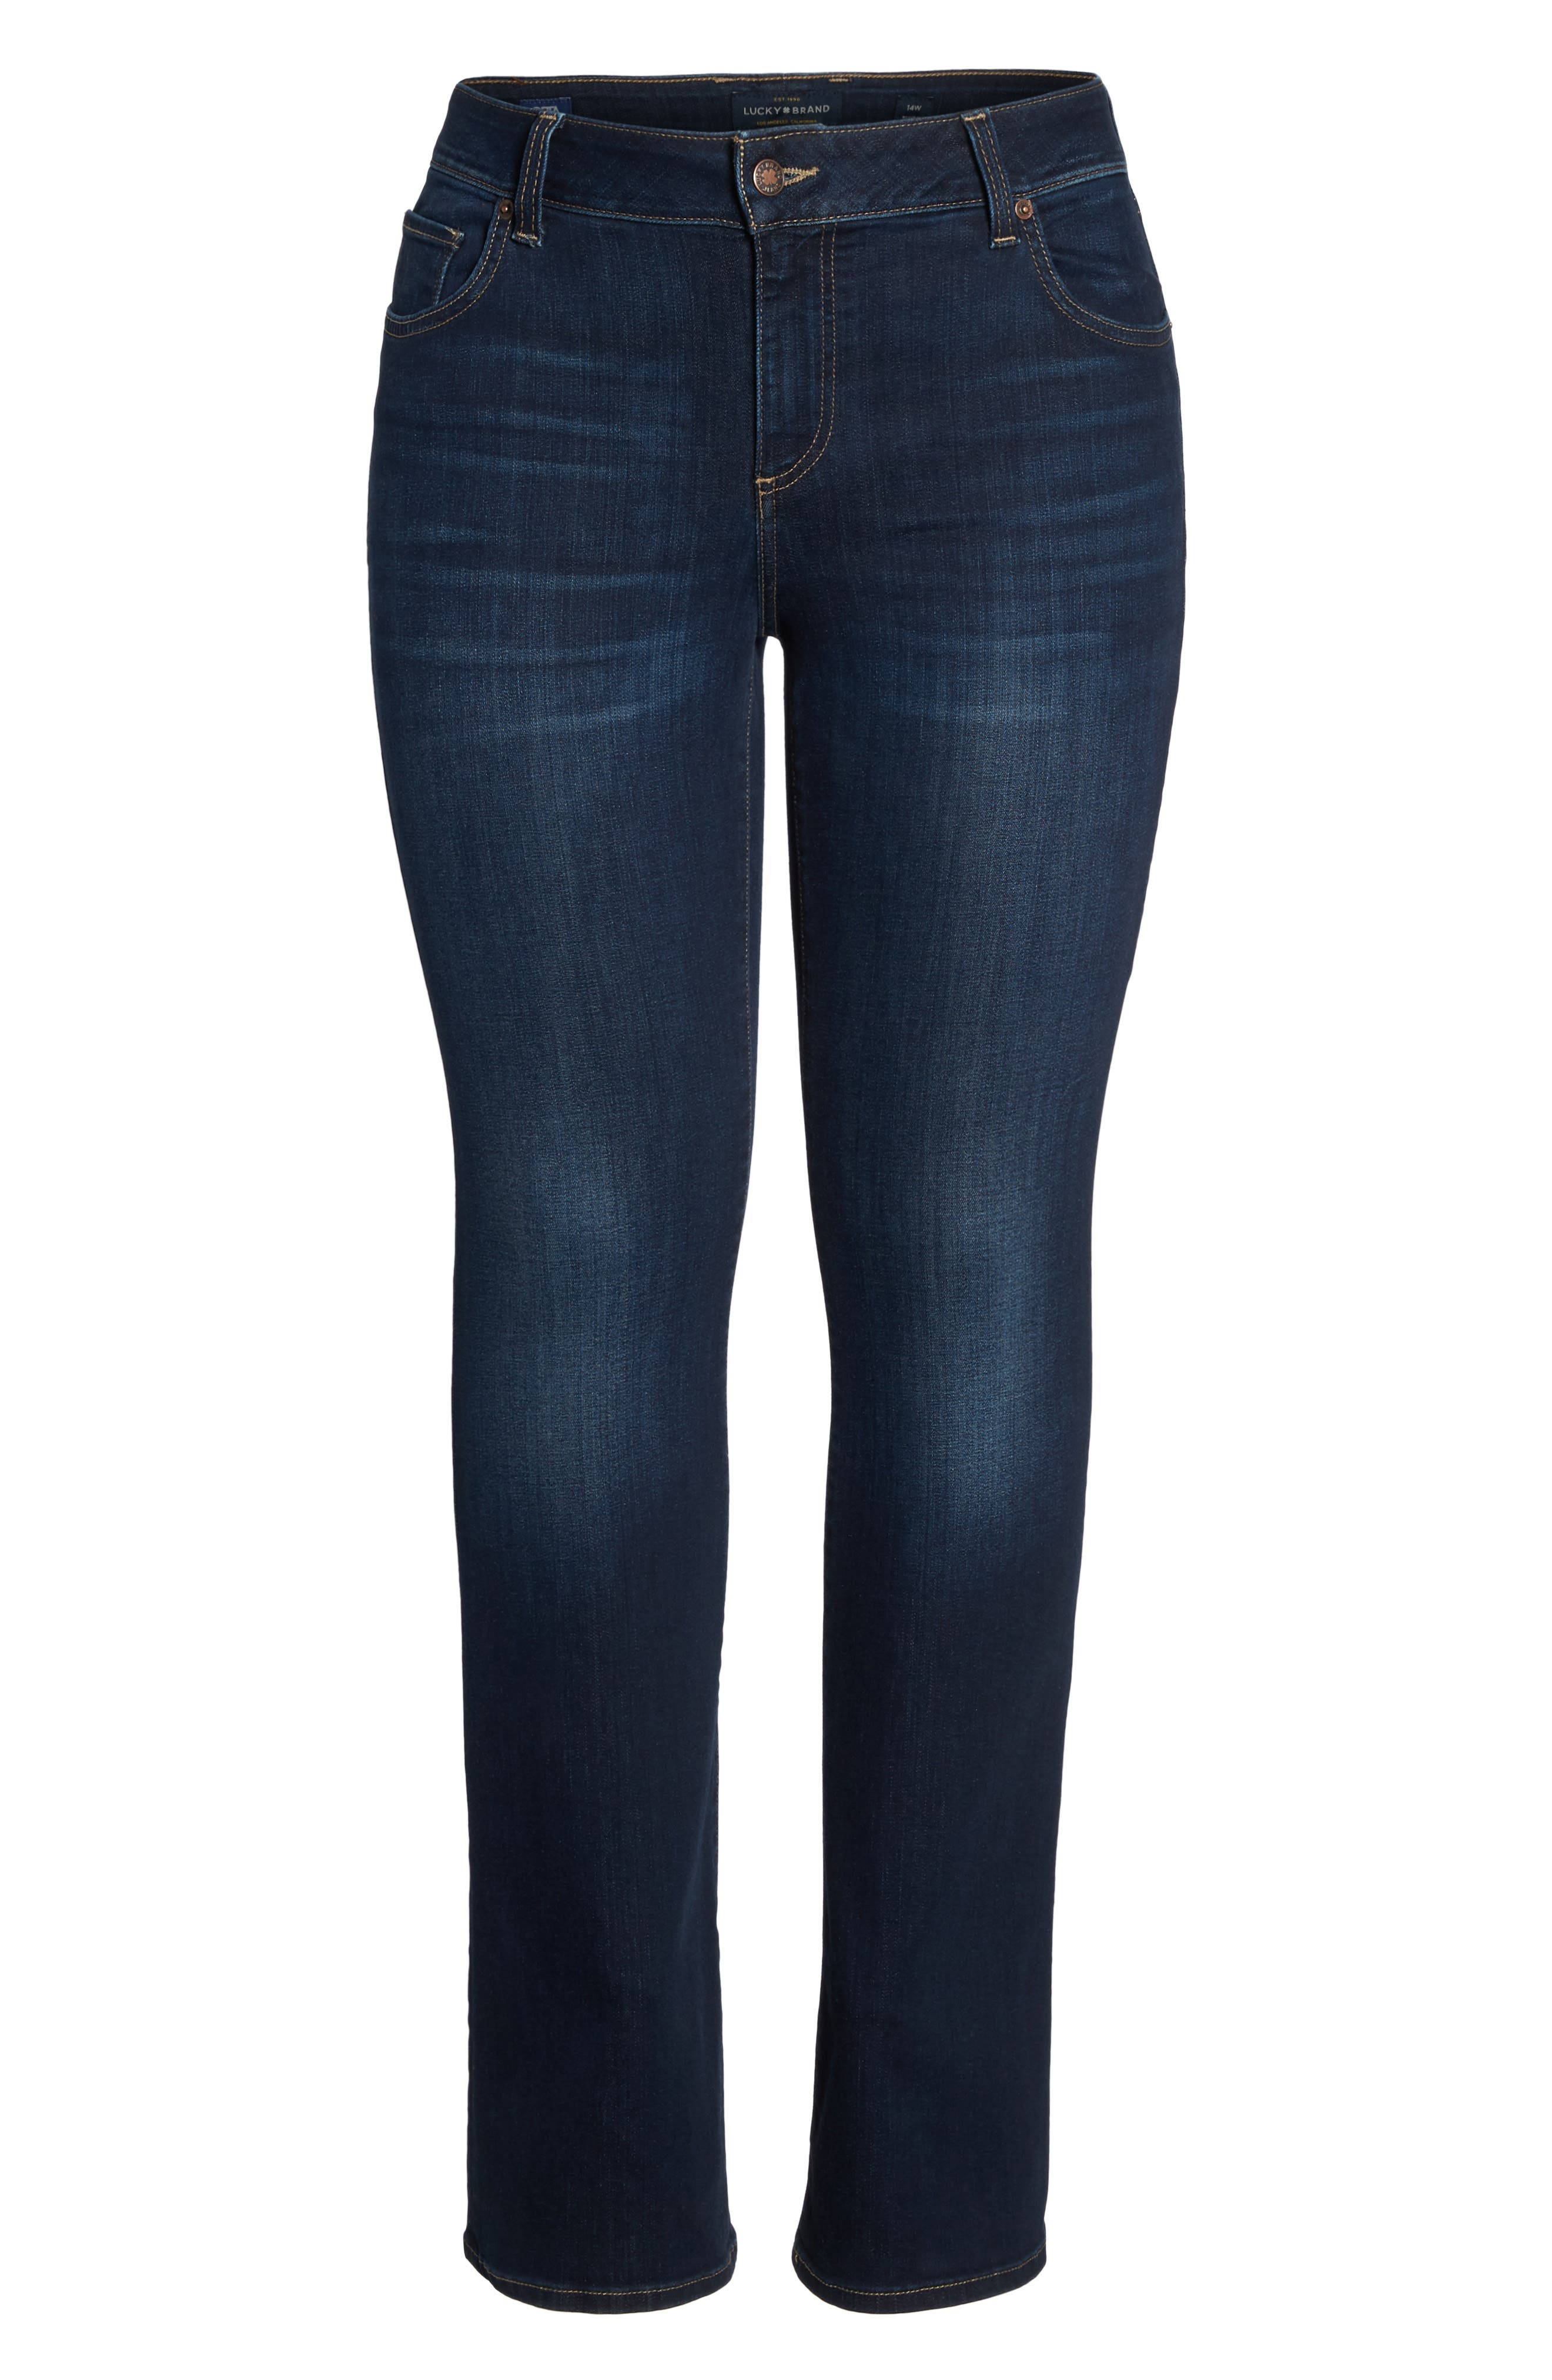 LUCKY BRAND, Ginger Bootcut Jeans, Alternate thumbnail 6, color, TWILIGHT BLUE